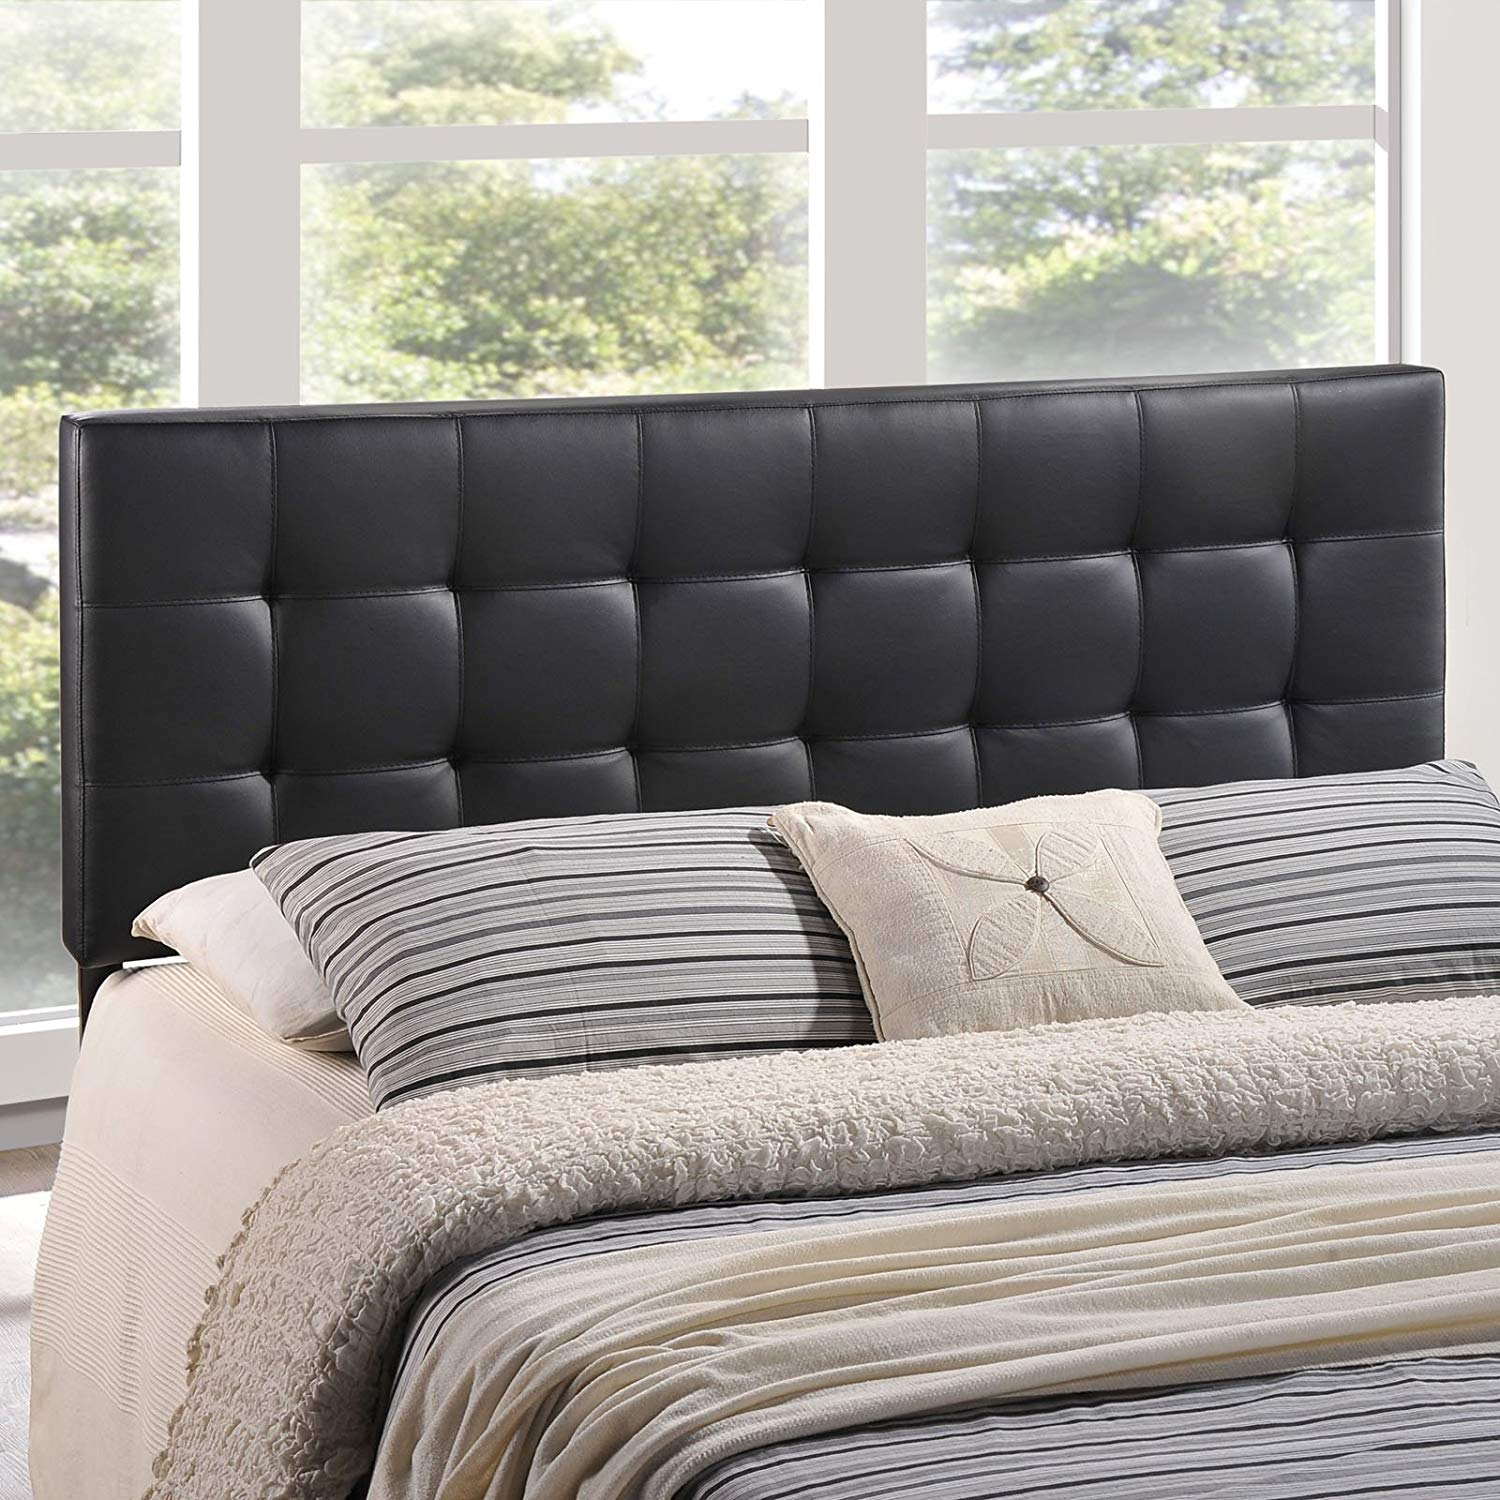 Modway Lily Upholstered Tufted Faux Leather Queen Headboard